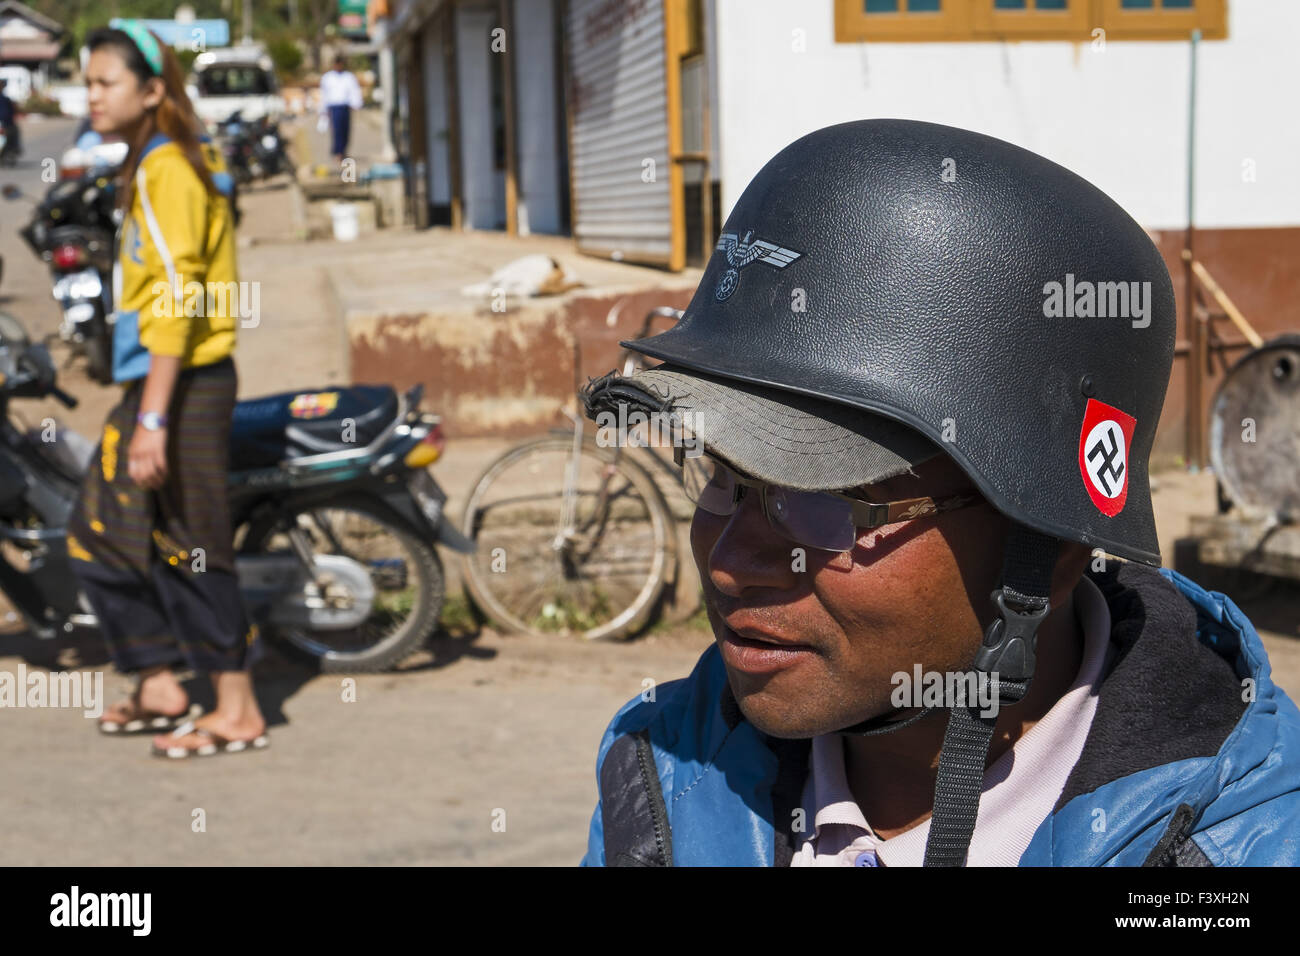 Moped Rider Wearing Helmet Of The Wehrmacht Stock Photo